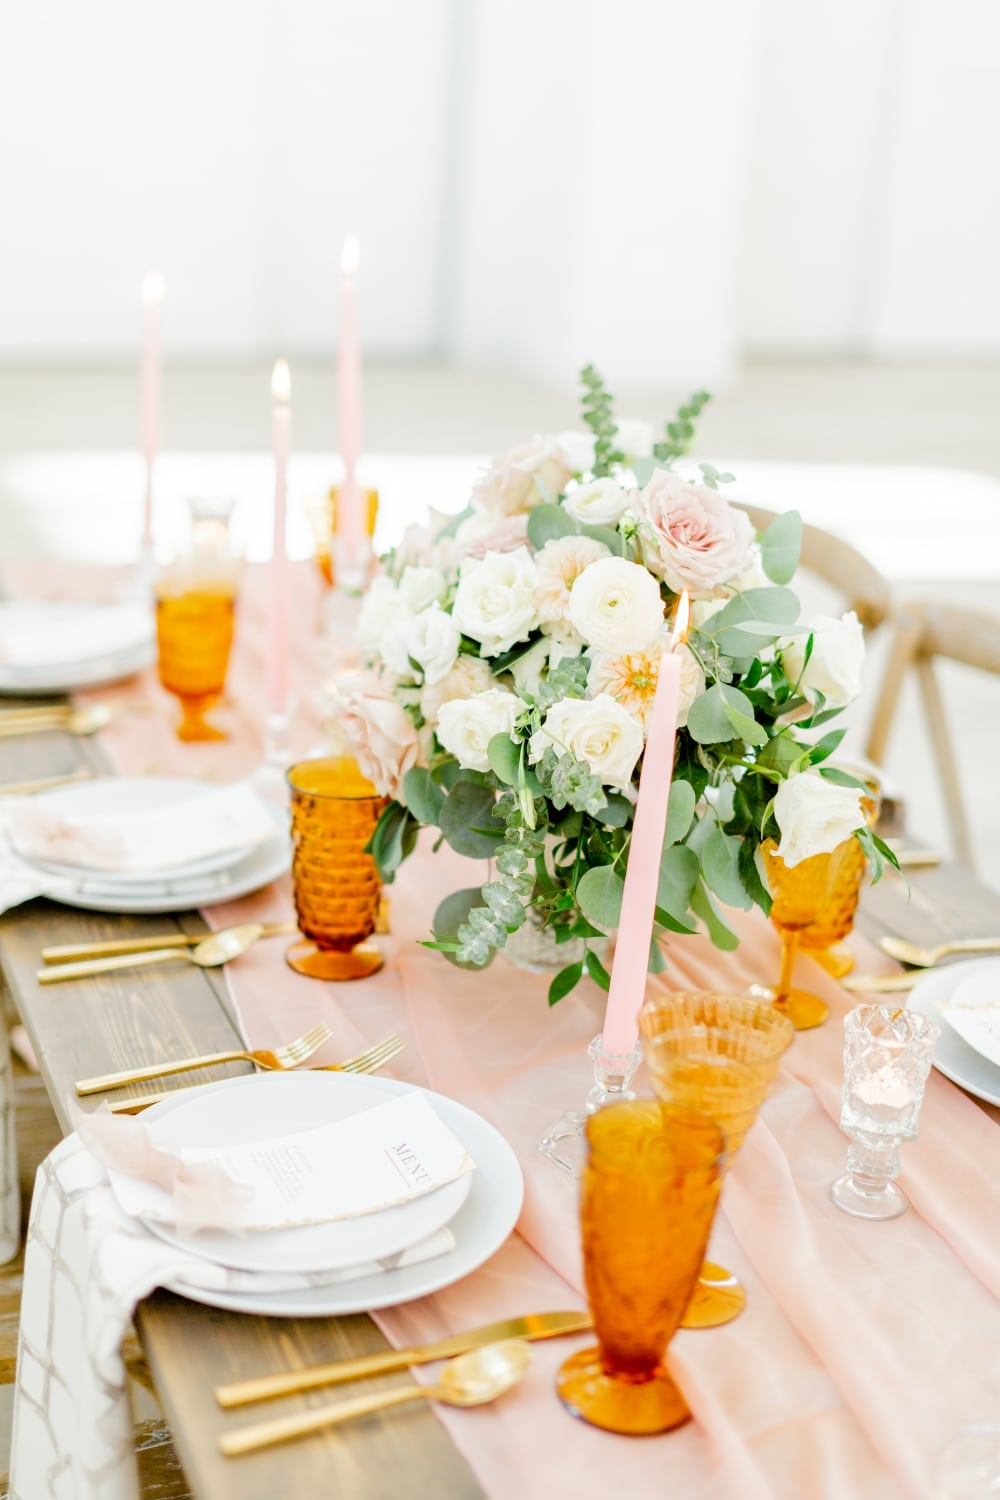 orange glasses and rose centerpiece as table setting